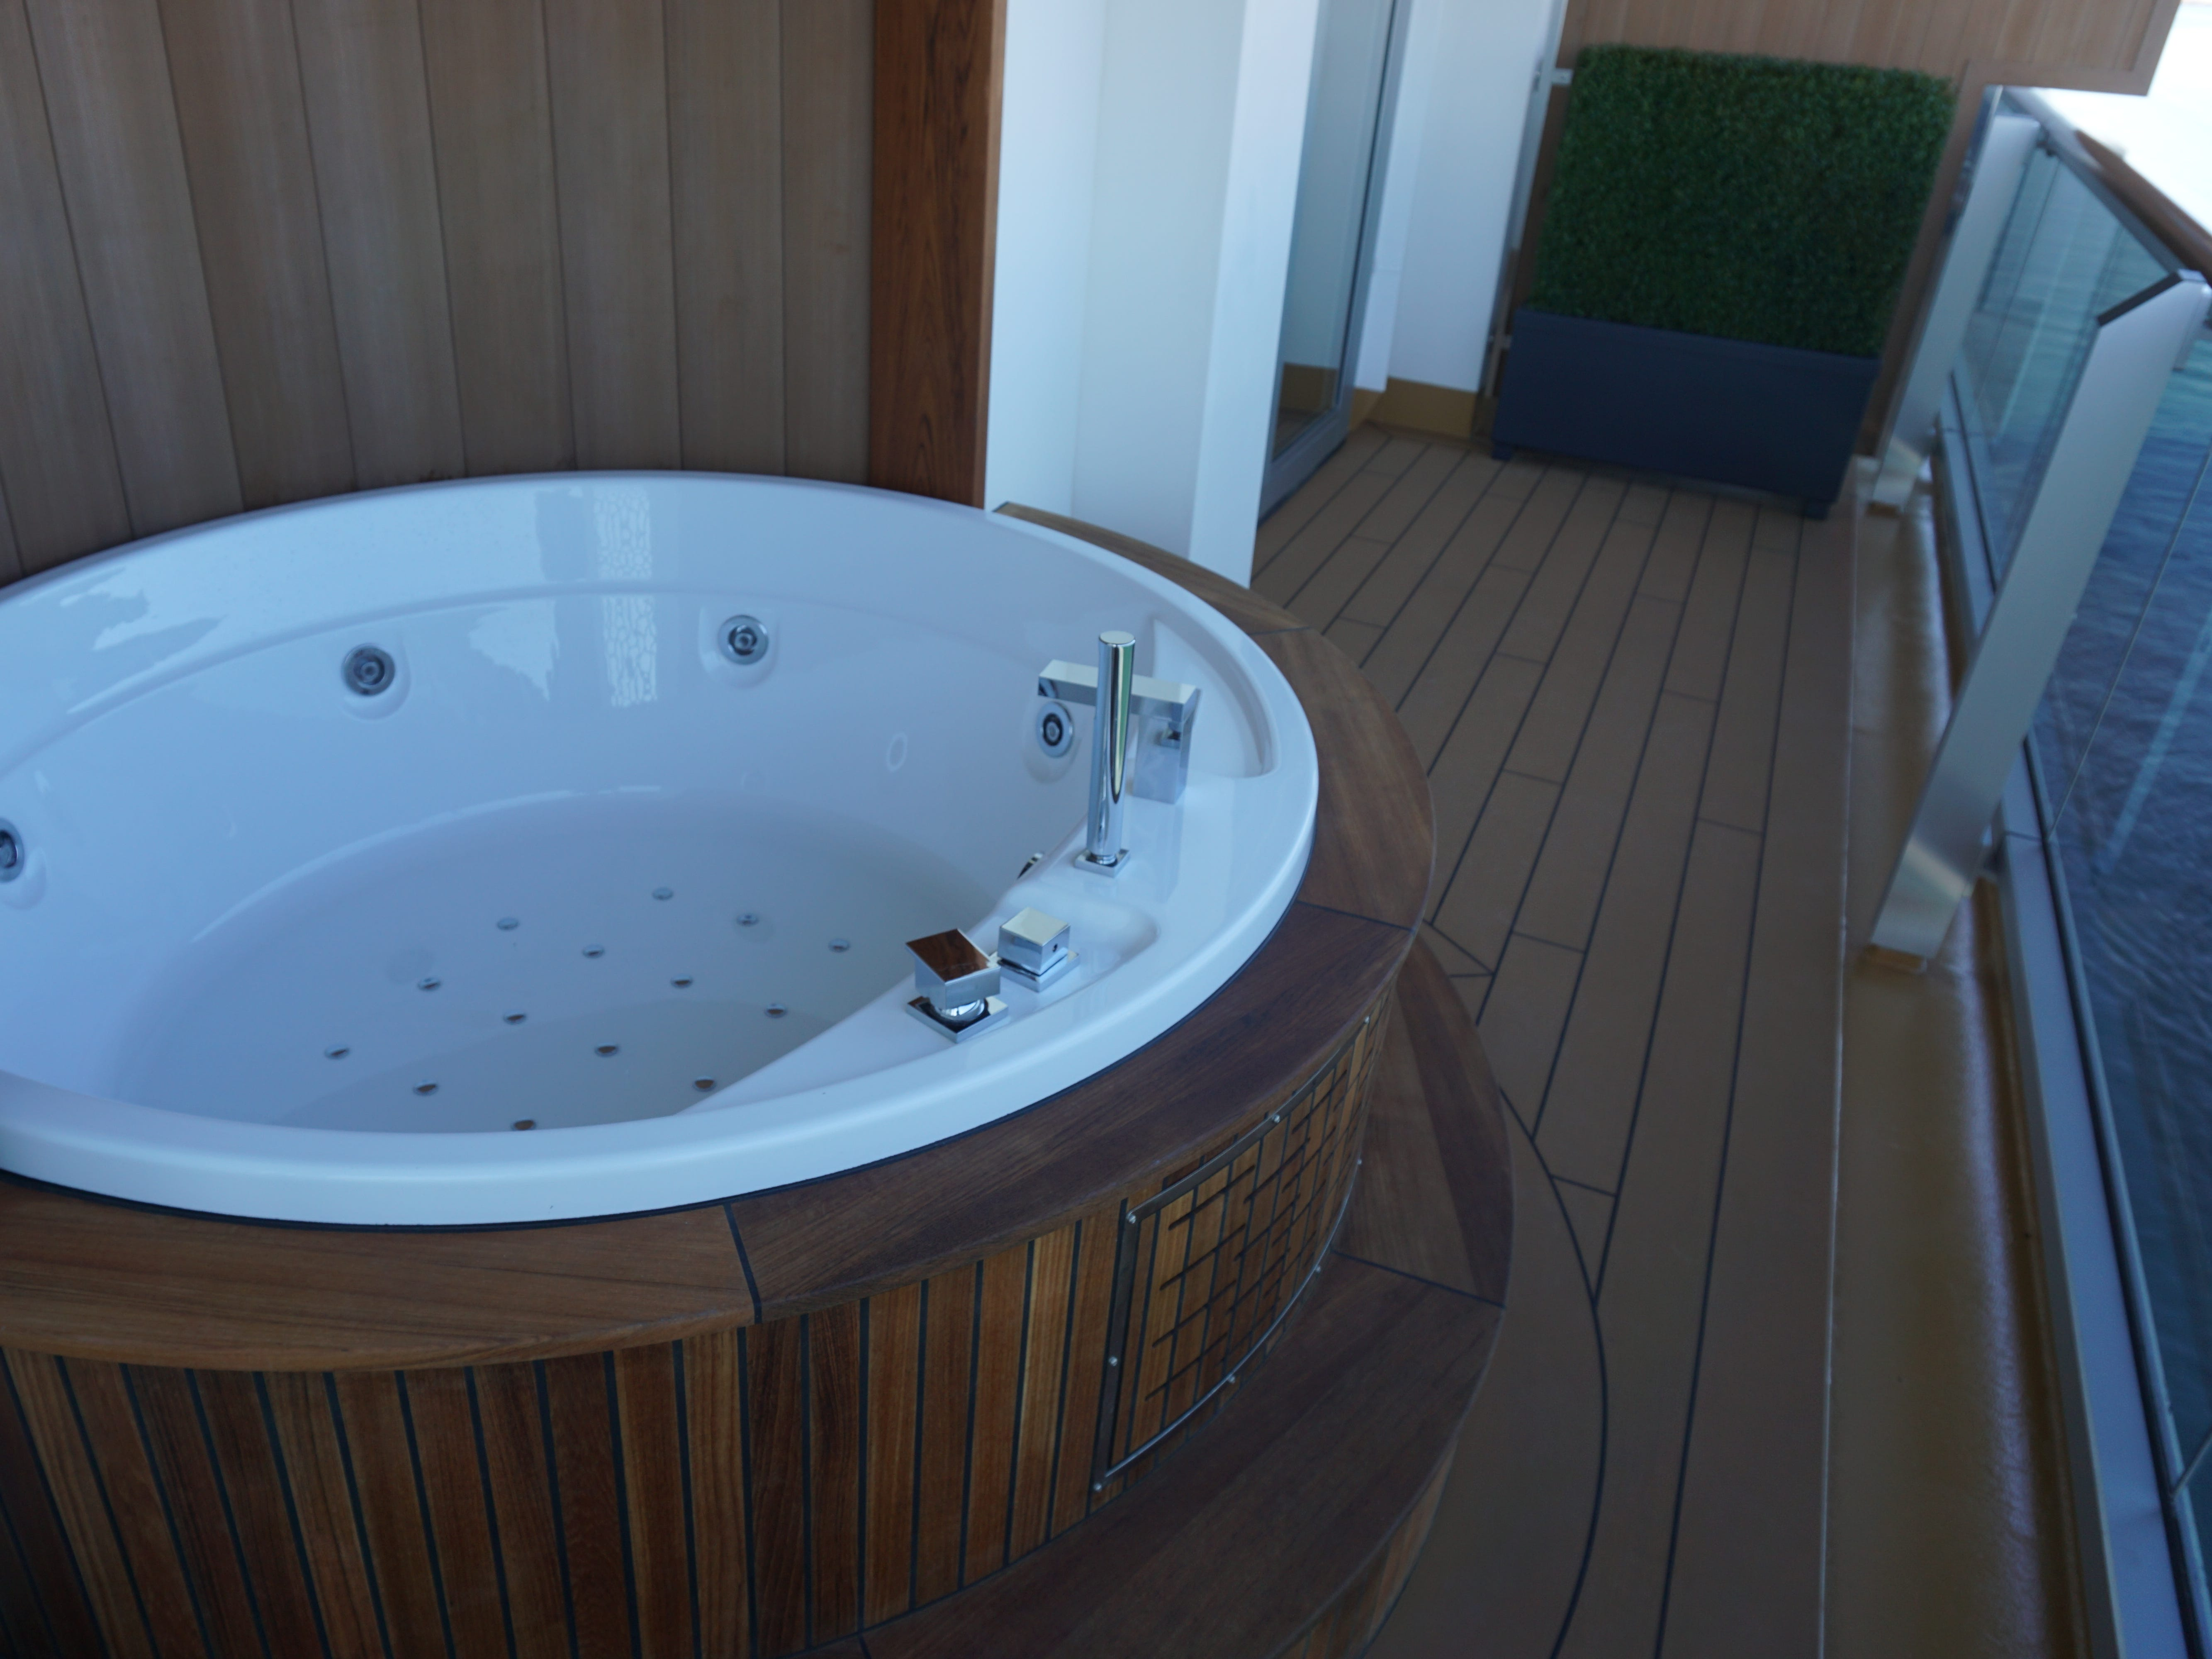 The Pinnacle Suite's balcony also has a private Jacuzzi tub.